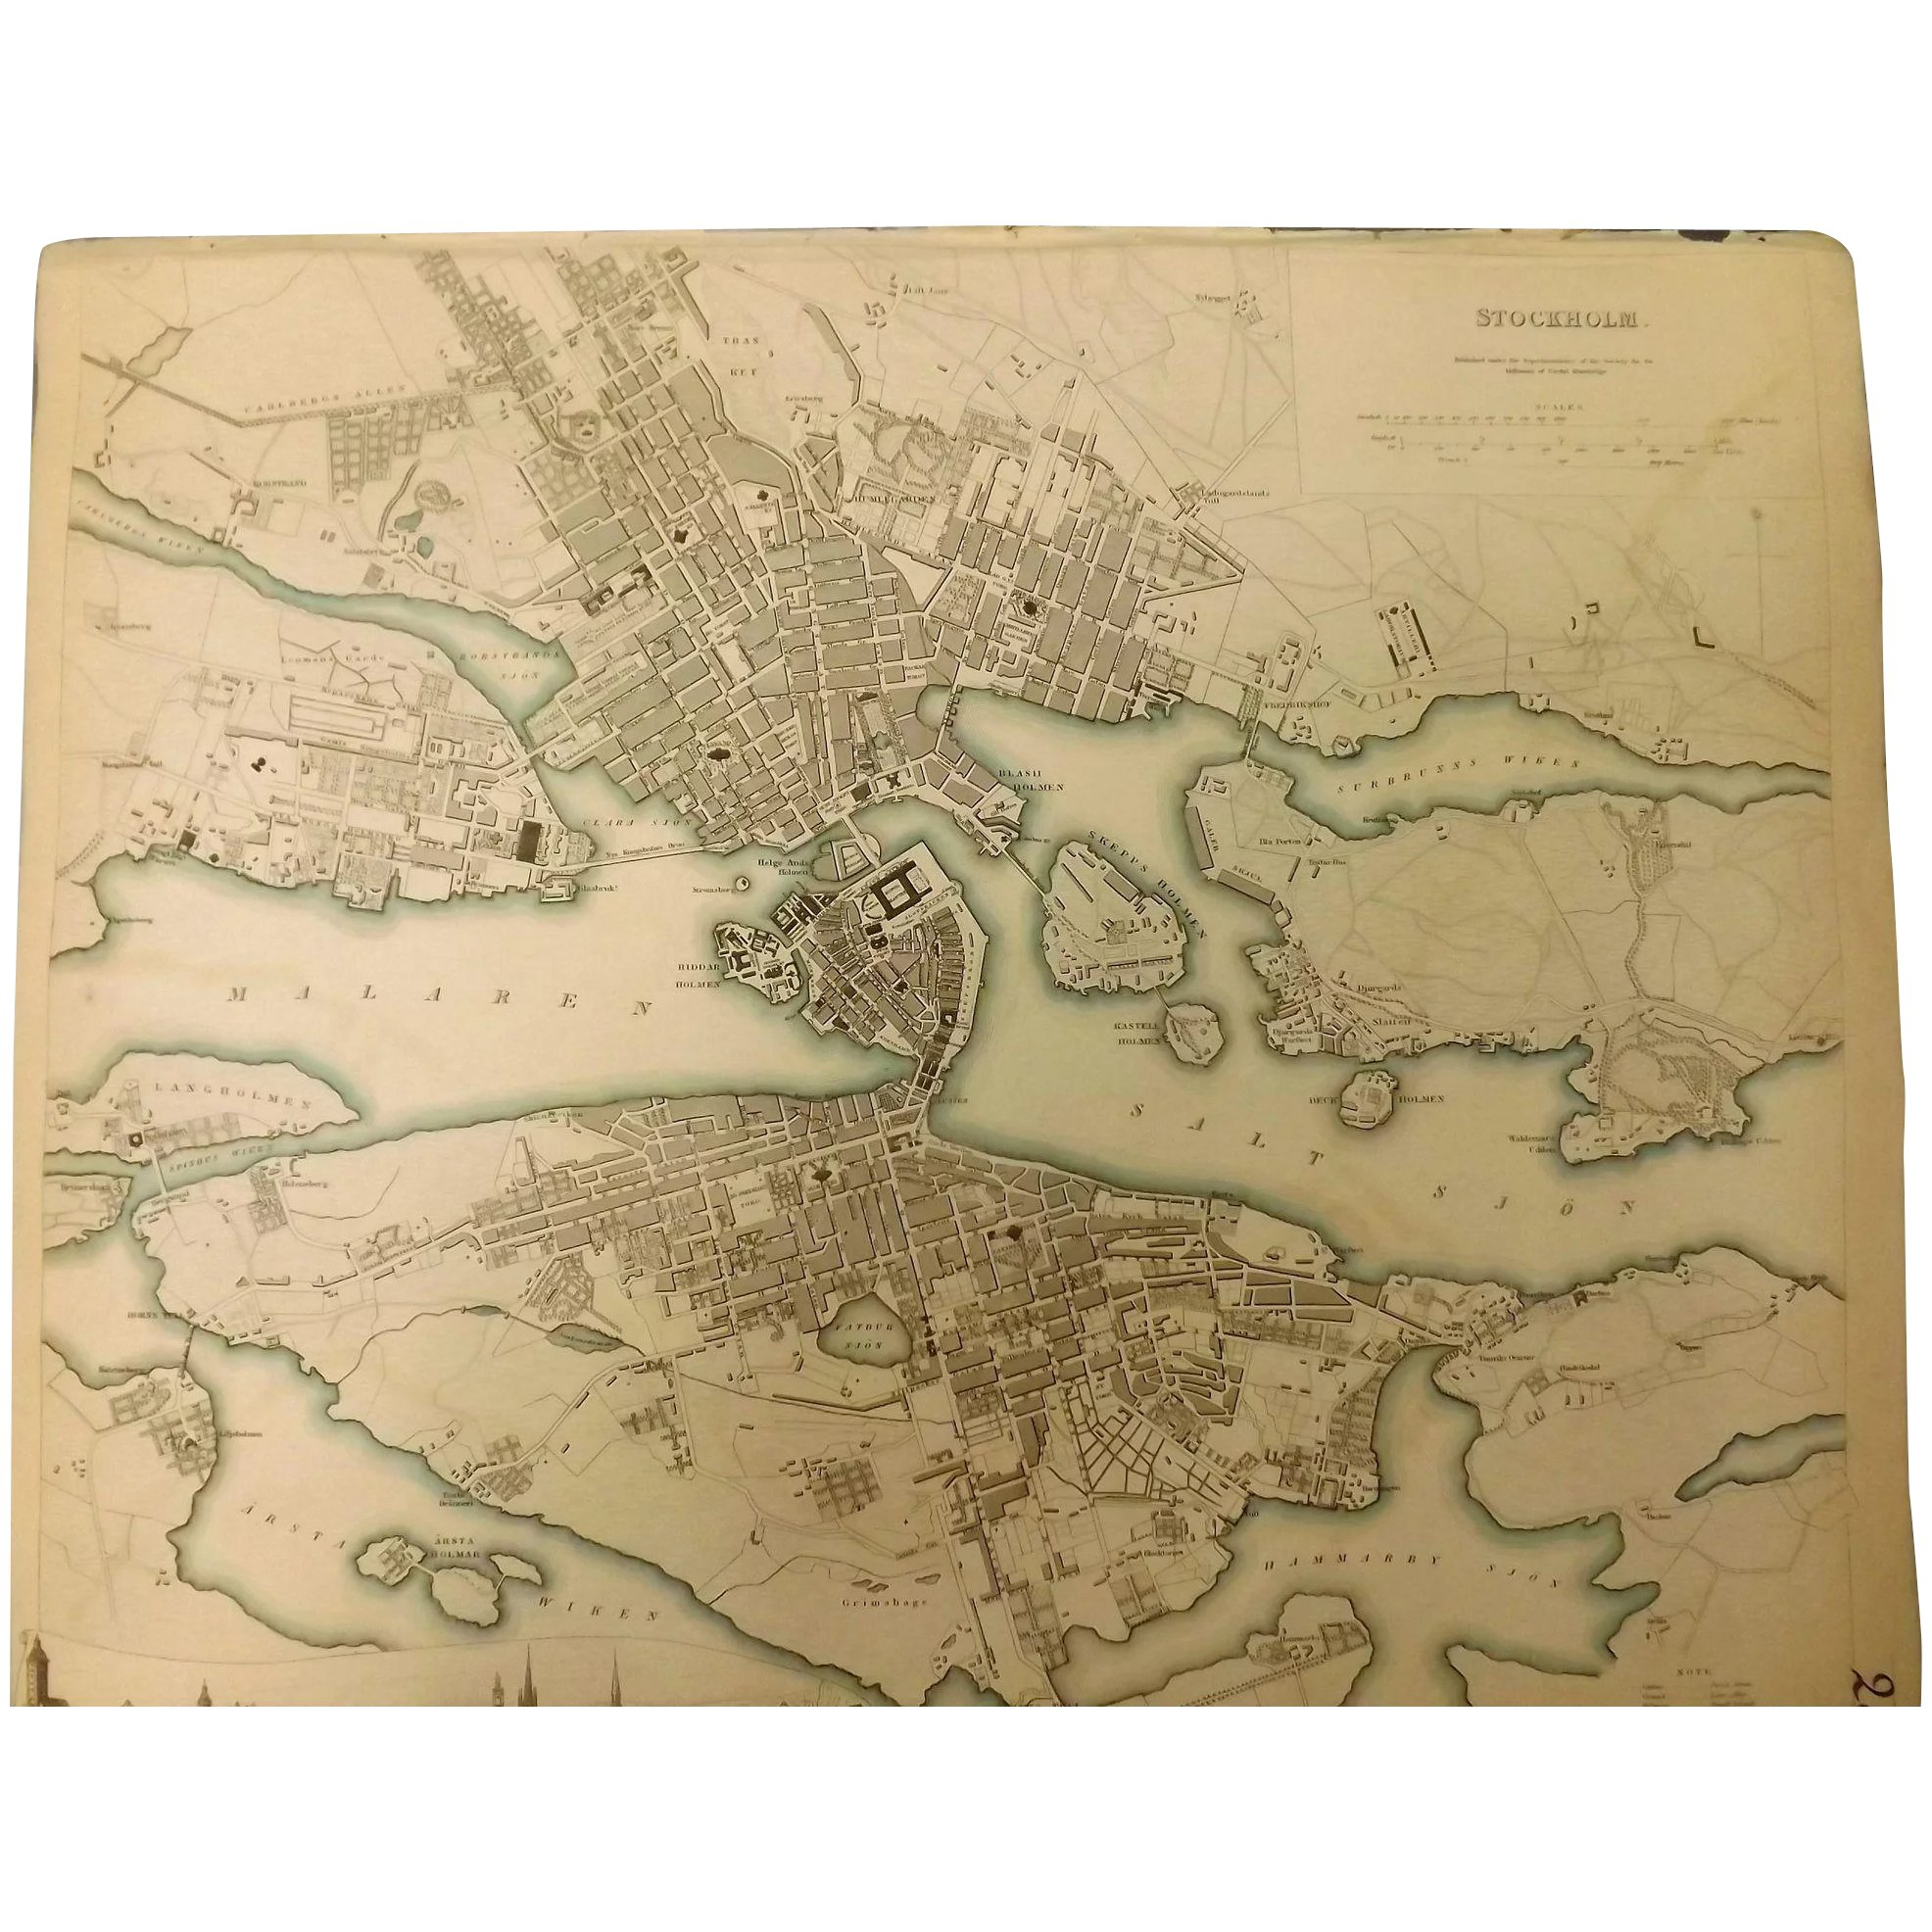 An Original Atlas Map of STOCKHOLM Circa 1836 Published By